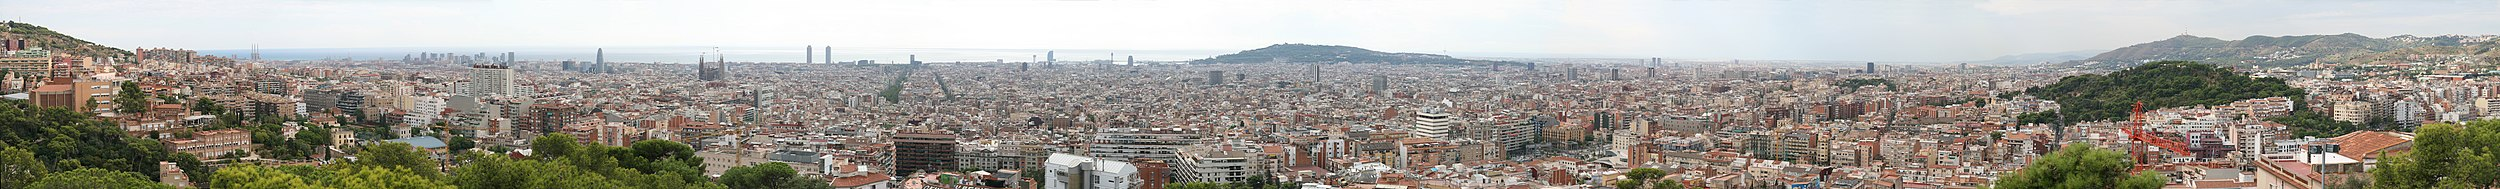 Panorama de Barcelona a partir do Calvário.